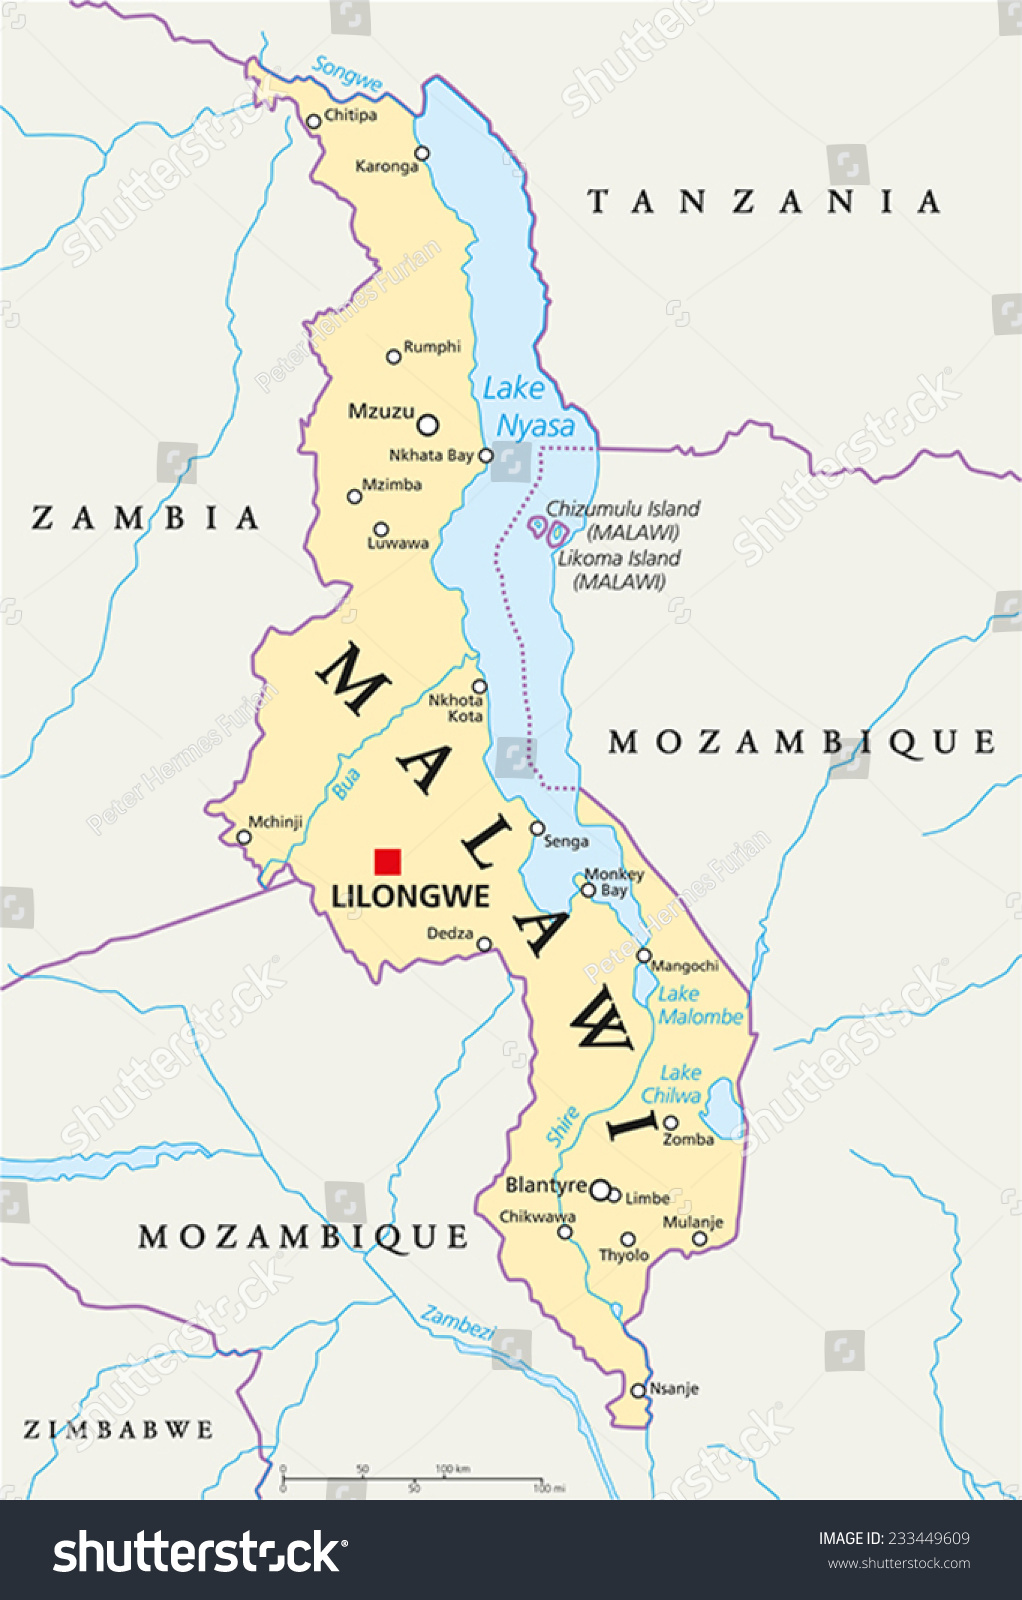 Malawi Political Map With Capital Lilongwe National Borders Important Cities Rivers And Lakes